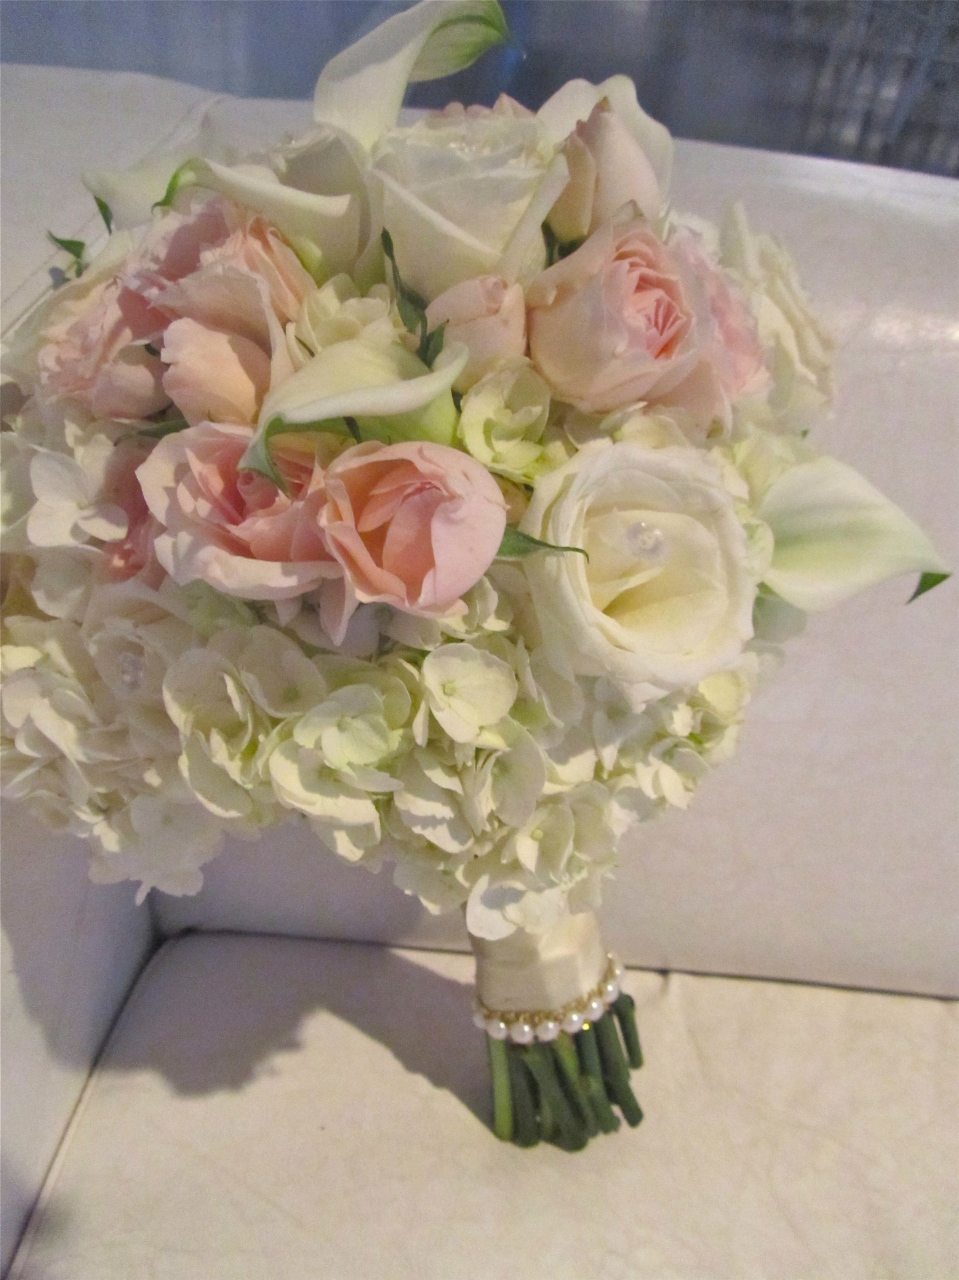 Blush and White Bouquet of Roses, Calla Lilies and Hydrangea